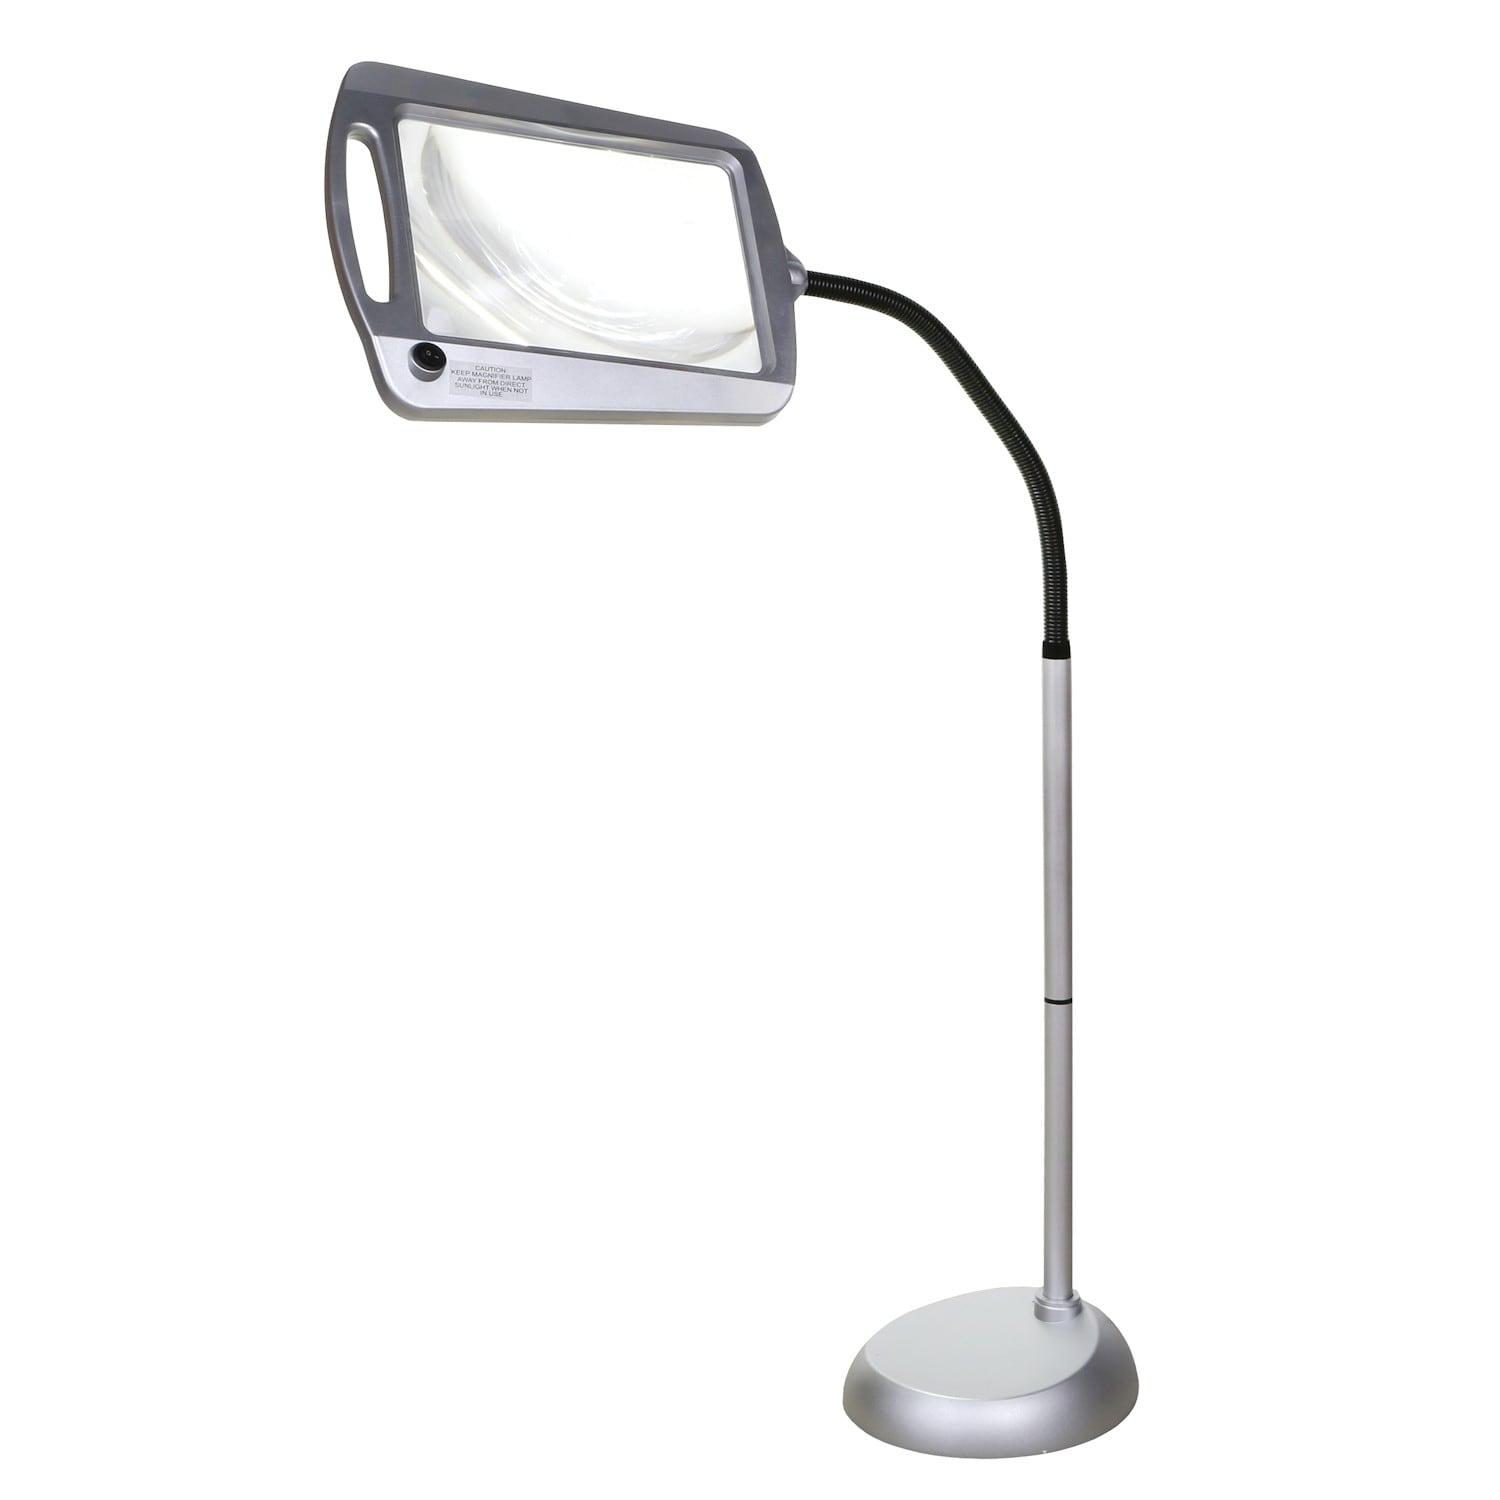 Floor Standing Led Lighted Magnifier Adjustable 3x Power Reading Crafting Aid Ebay